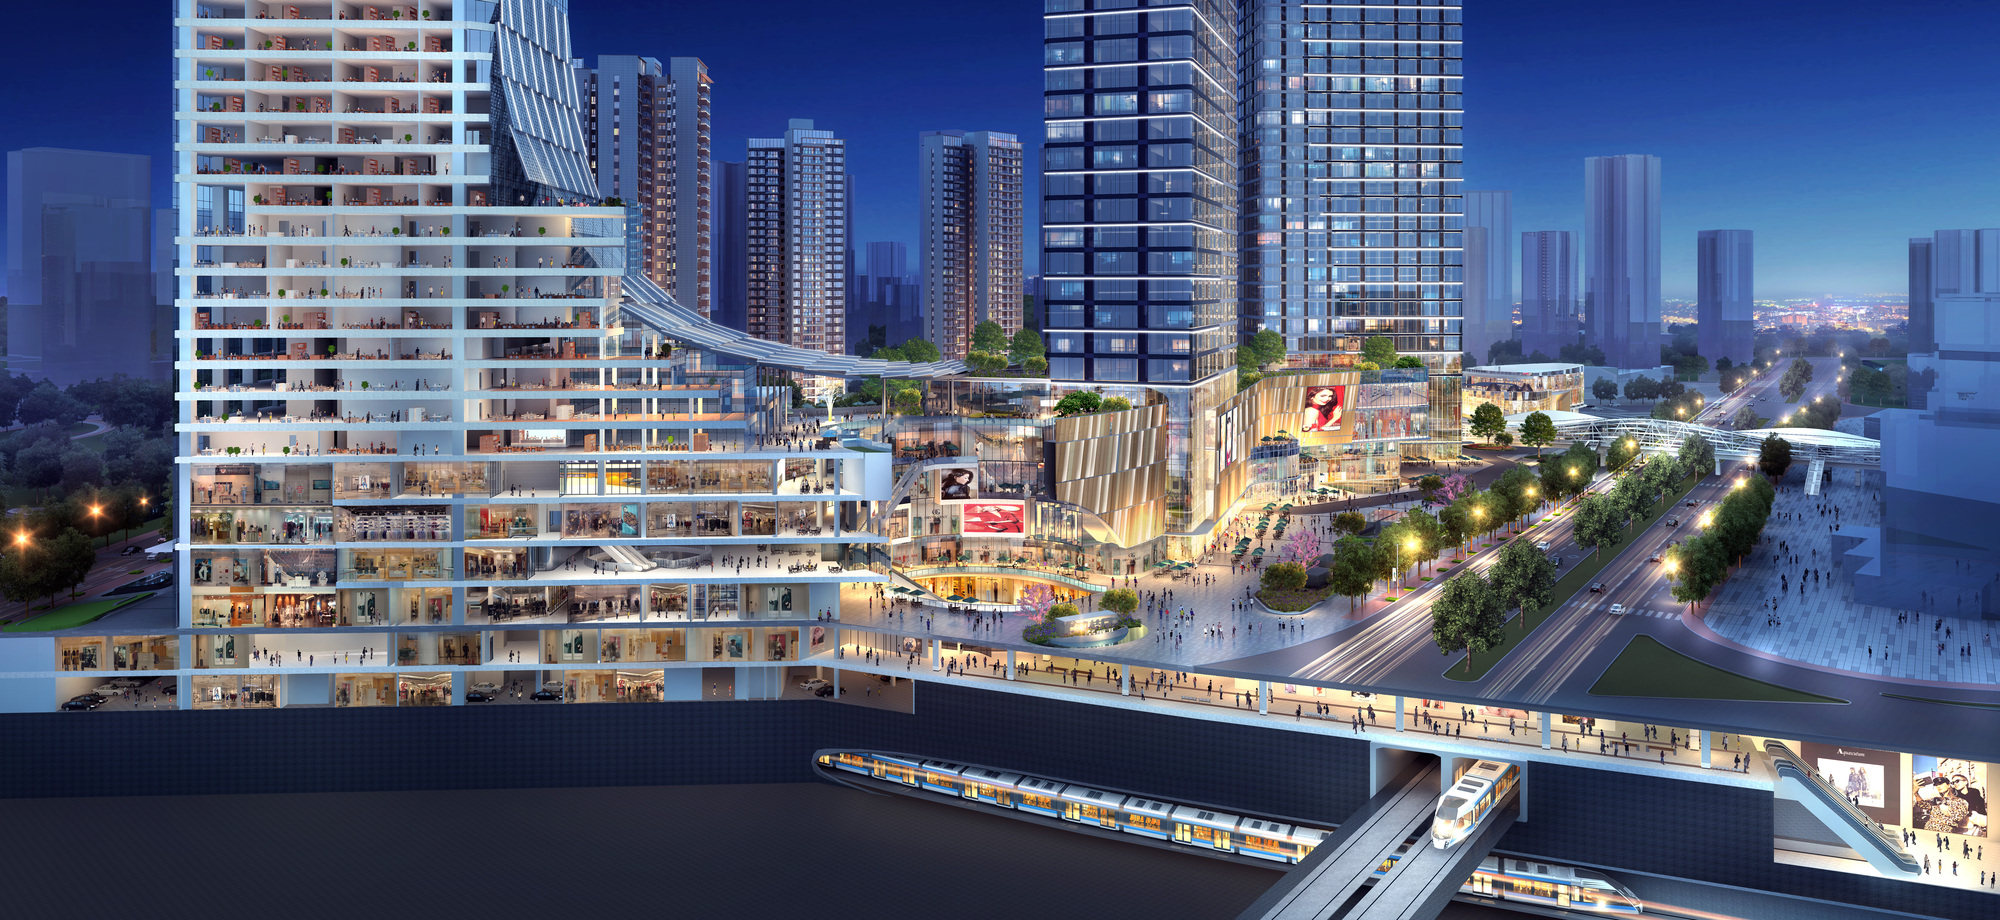 Gallery of Ronald Lu & Partners Showcases Upgraded Concept for a Transit-Oriented Development - 2